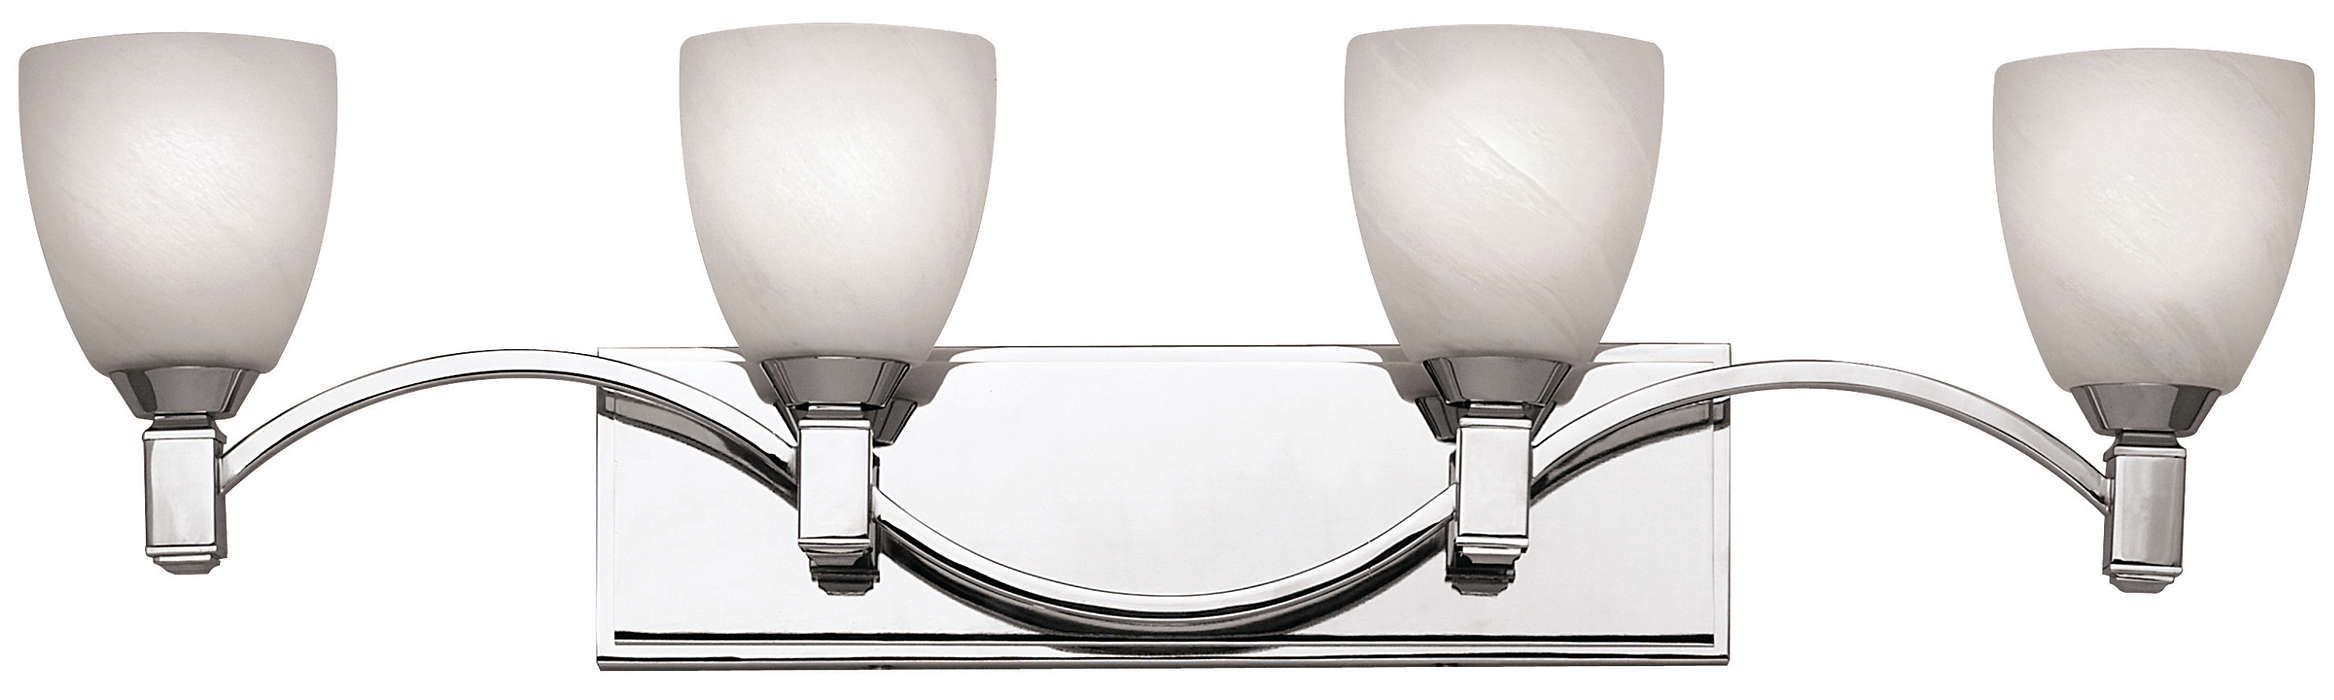 Crescendo 4-light Bath in Chrome finish